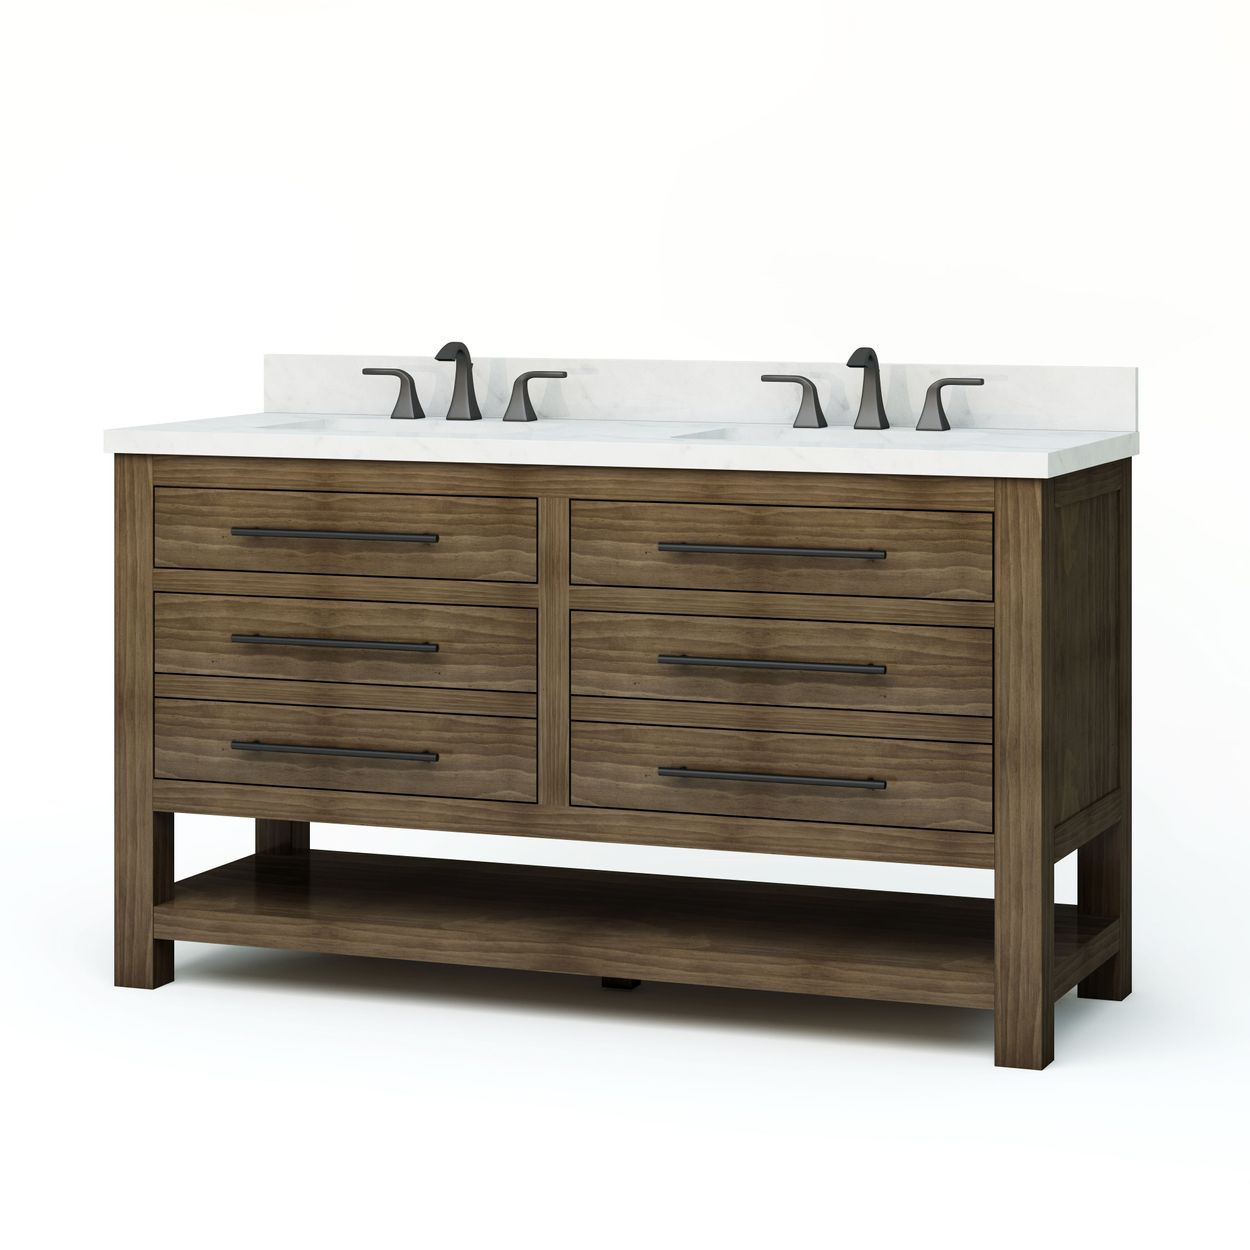 Allen Roth Kennilton 60 In Gray Oak Double Sink Bathroom Vanity With Carrera White Engineered Stone Top In The Bathroom Vanities With Tops Department At Lowes Com